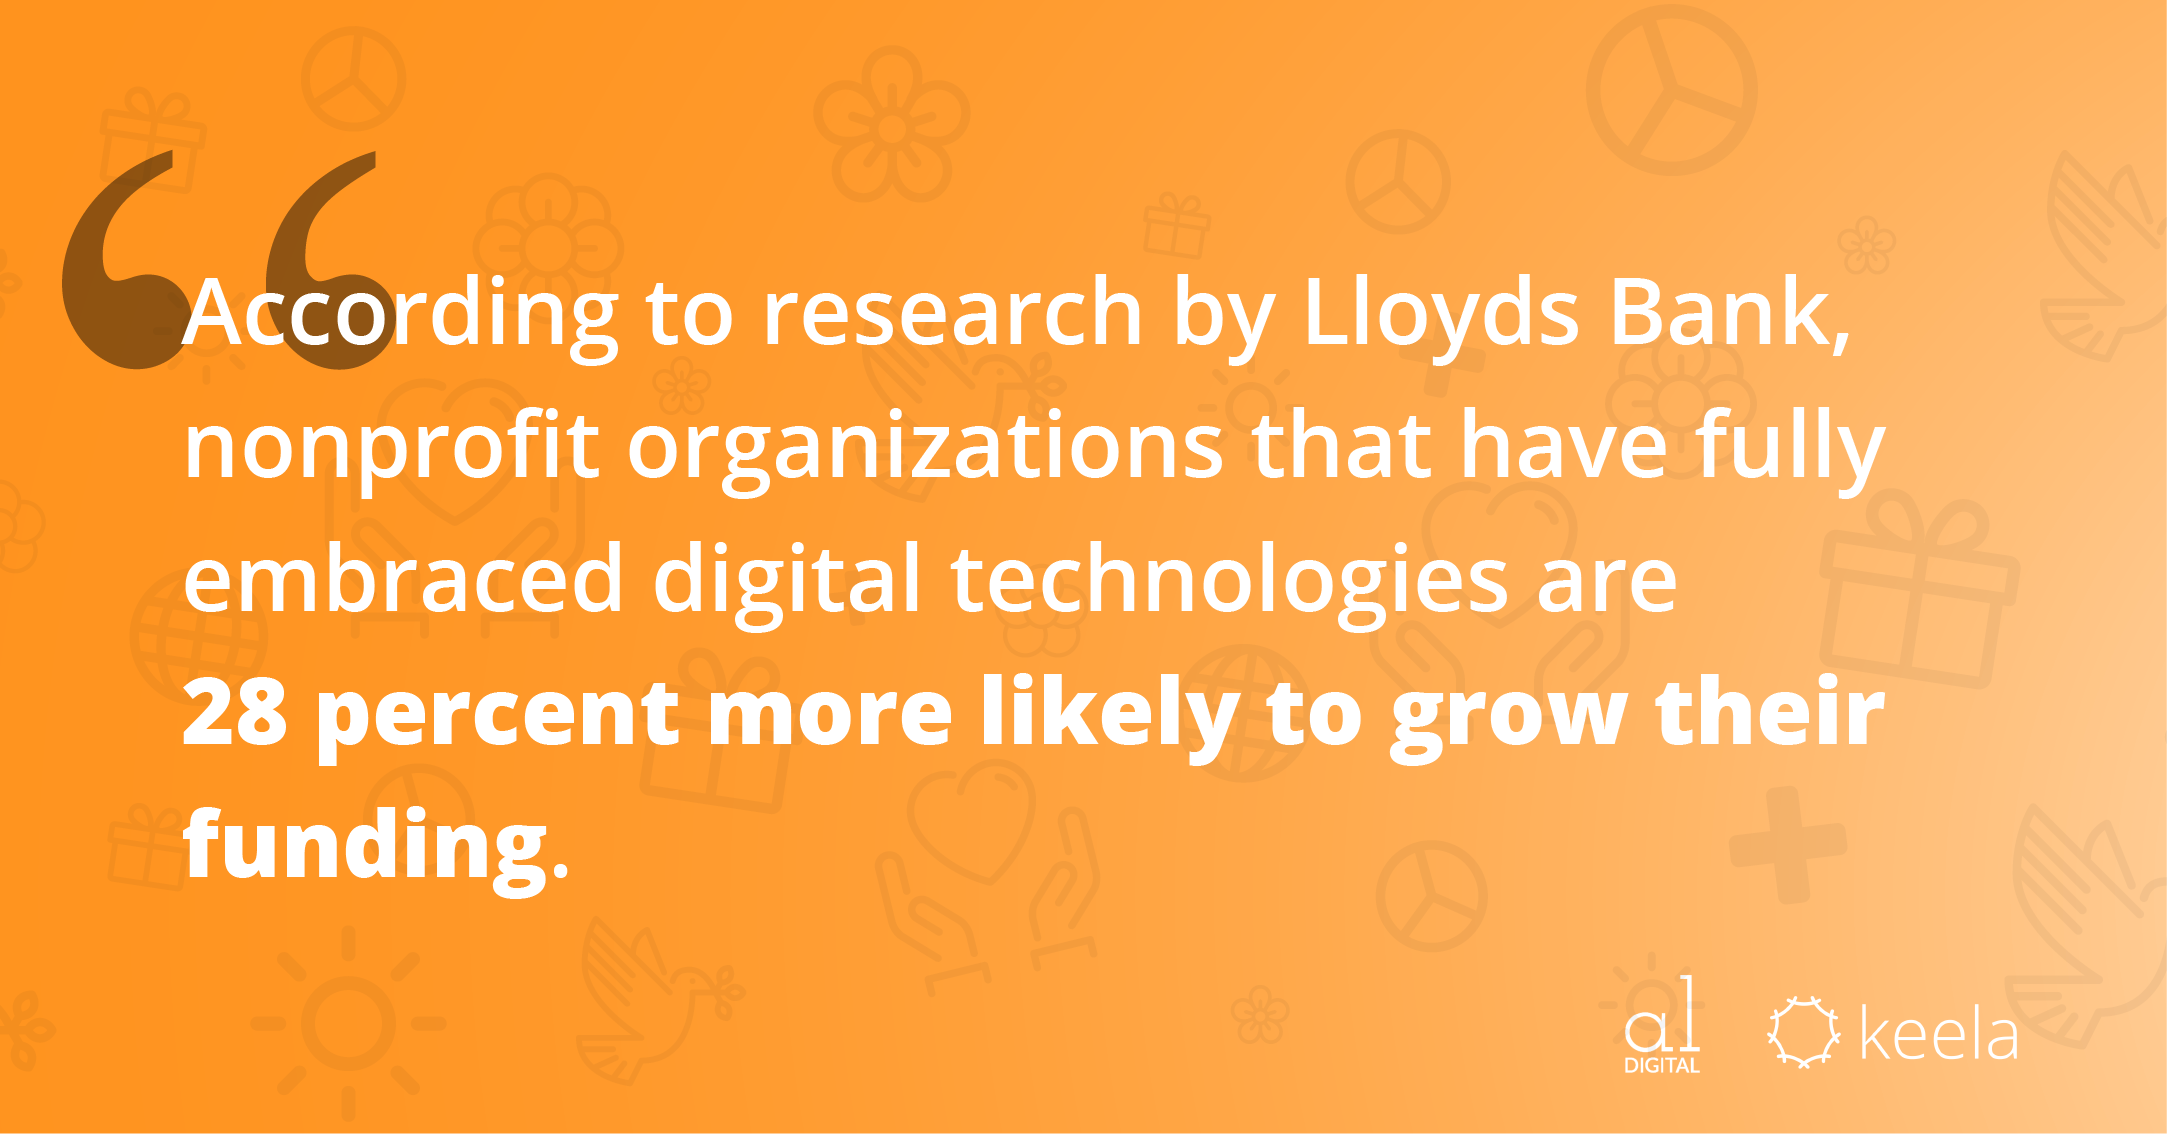 According to research by Lloyds bank, nonprofit organizations that have fully embraced digital technologies are 28 percent more likely to grow their funding.